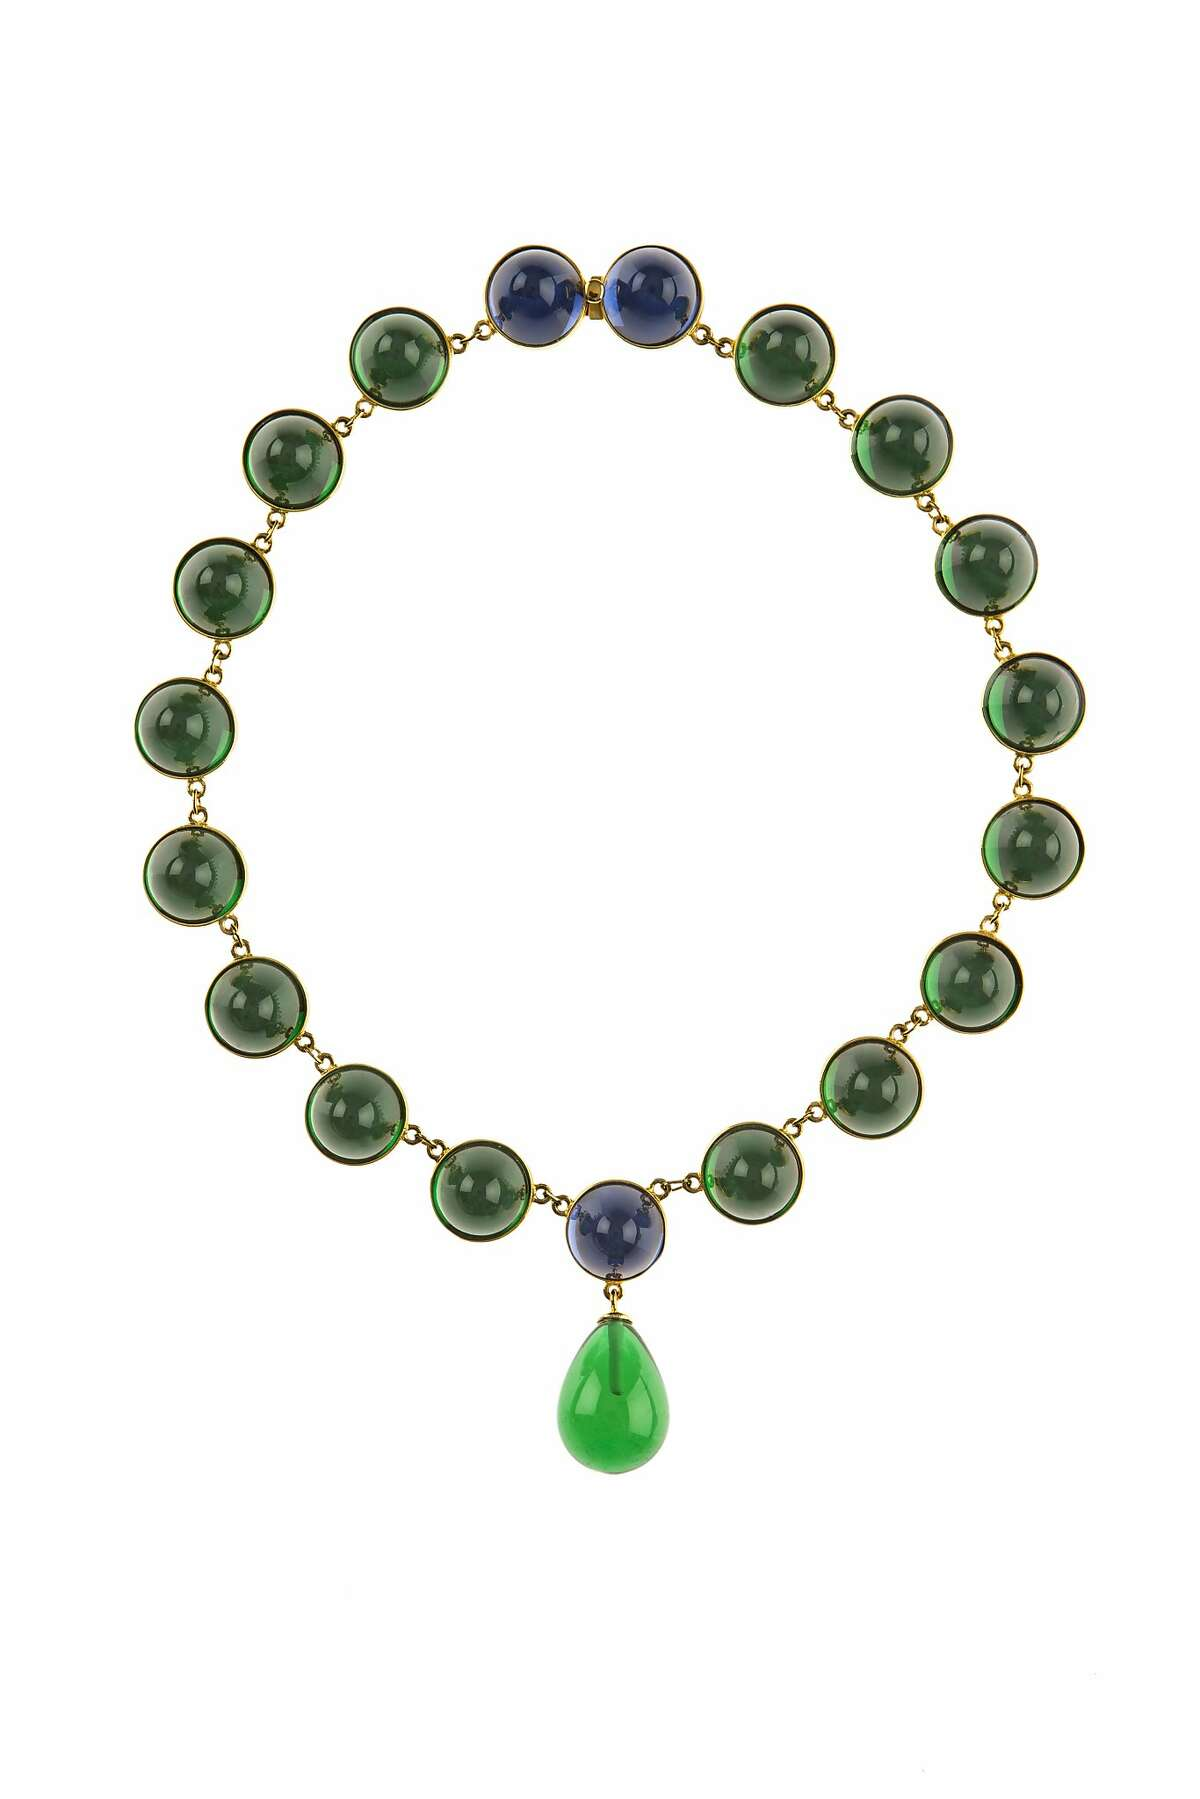 Mountain View jewelry company Camille K has a line of baubles inspired by Southern California, called